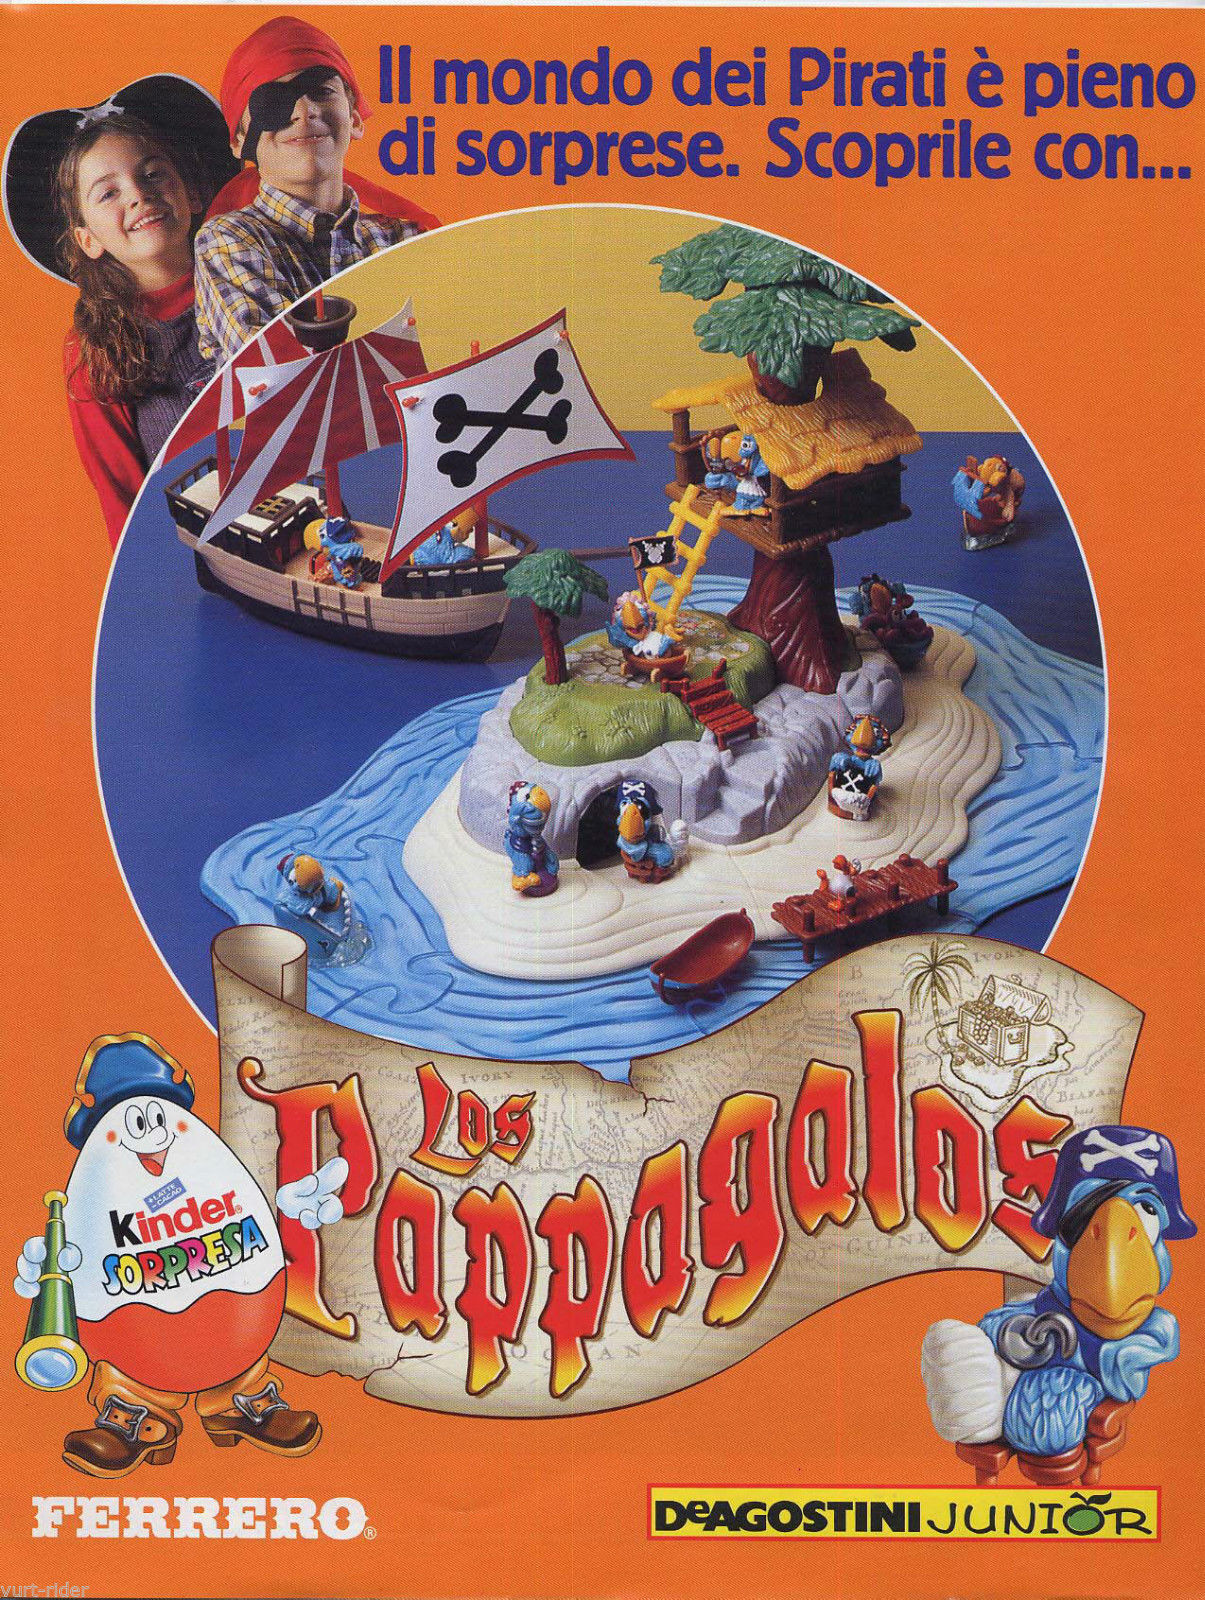 KINDER isola LOS PAPPAGALOS island + galleon snap fit kit +15 booklet new sealed